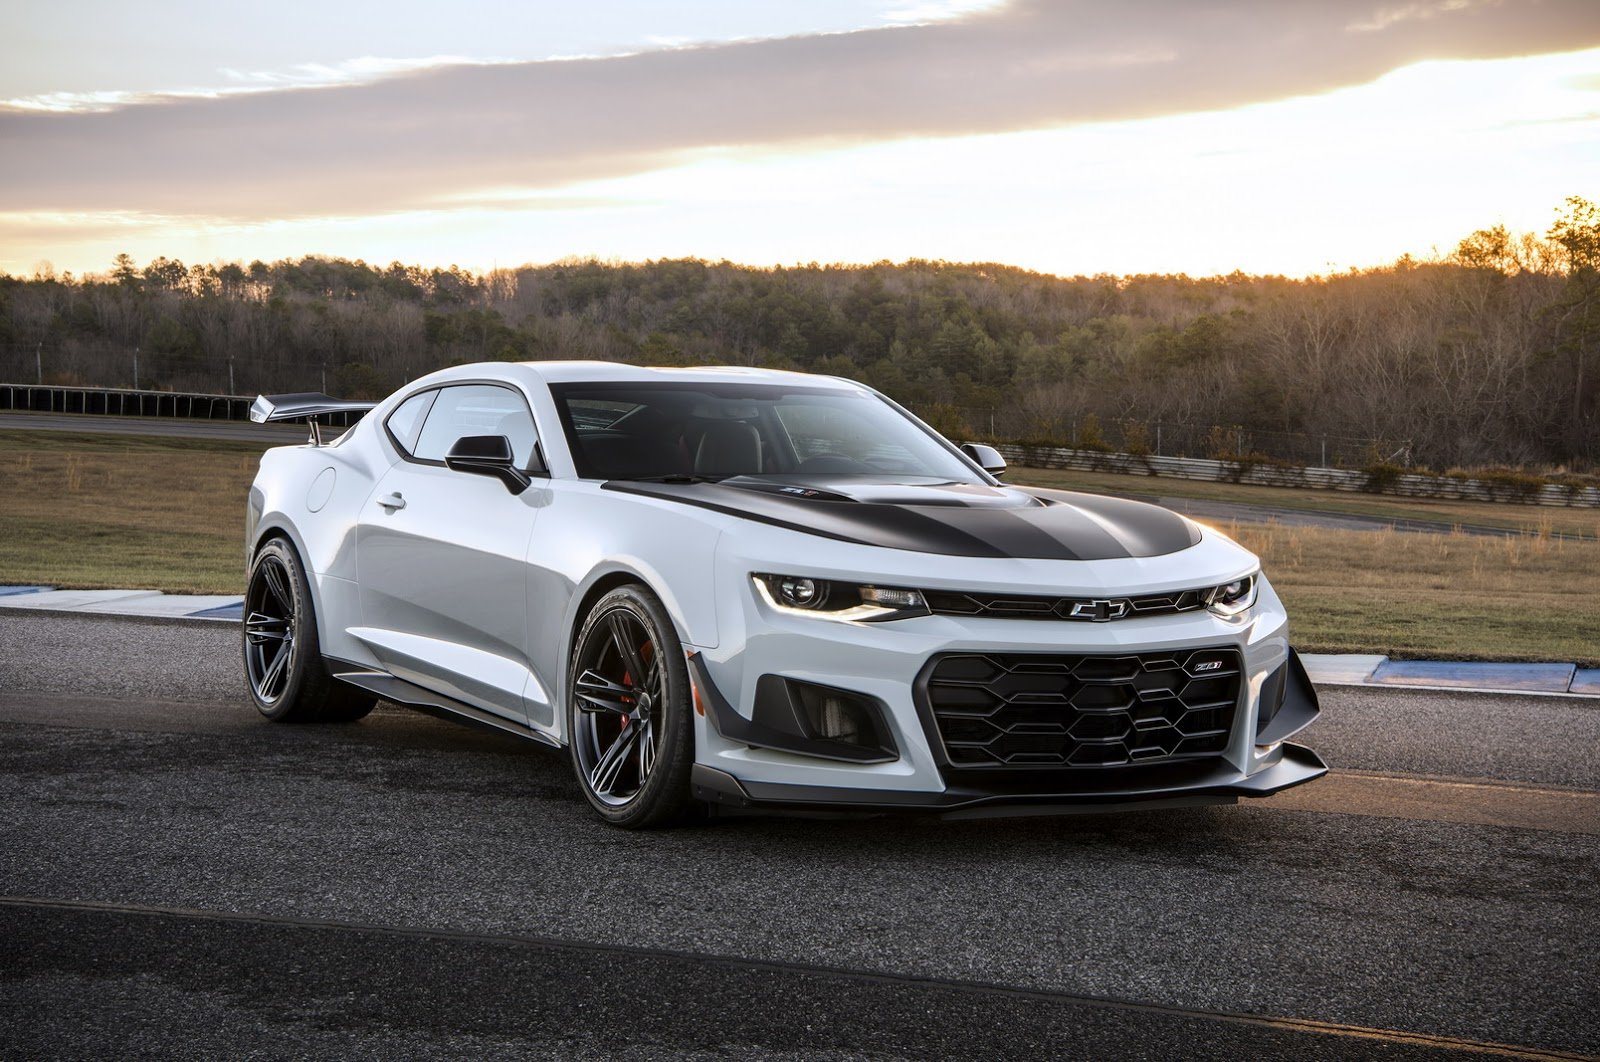 Chevrolet Camaro ZL1 1LE sets a ridiculous Nürburgring lap record